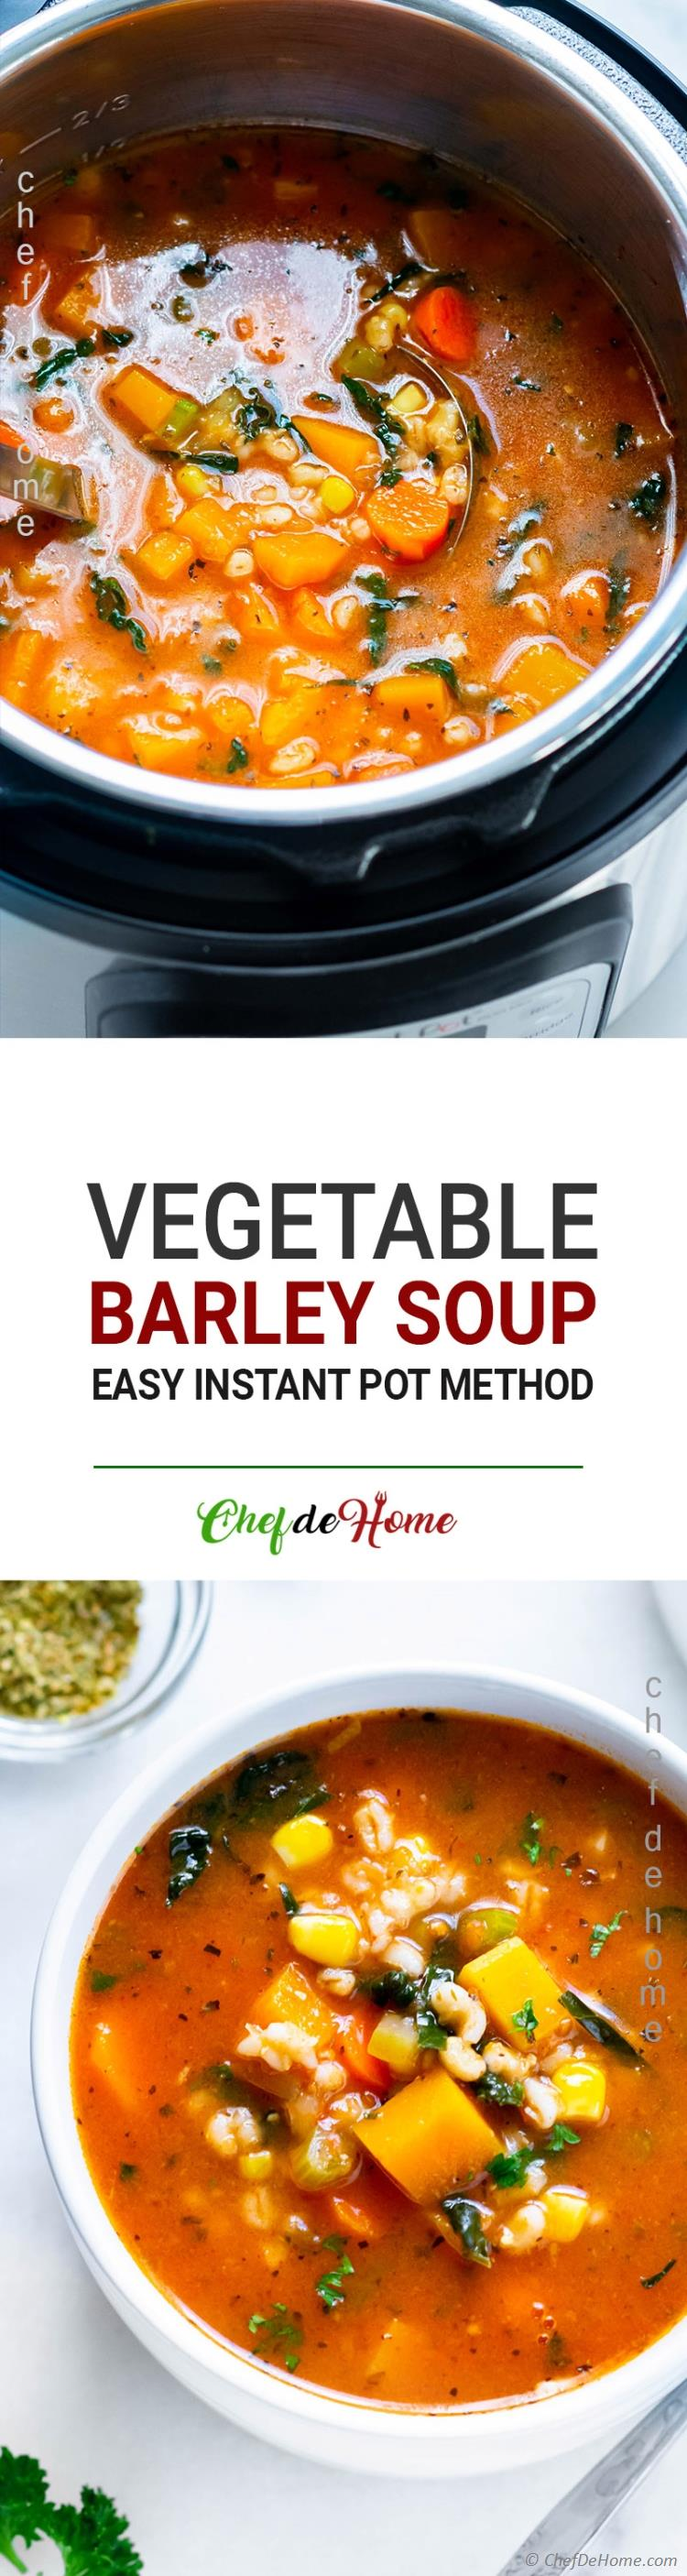 Easy Barley Soup Instant Pot Method